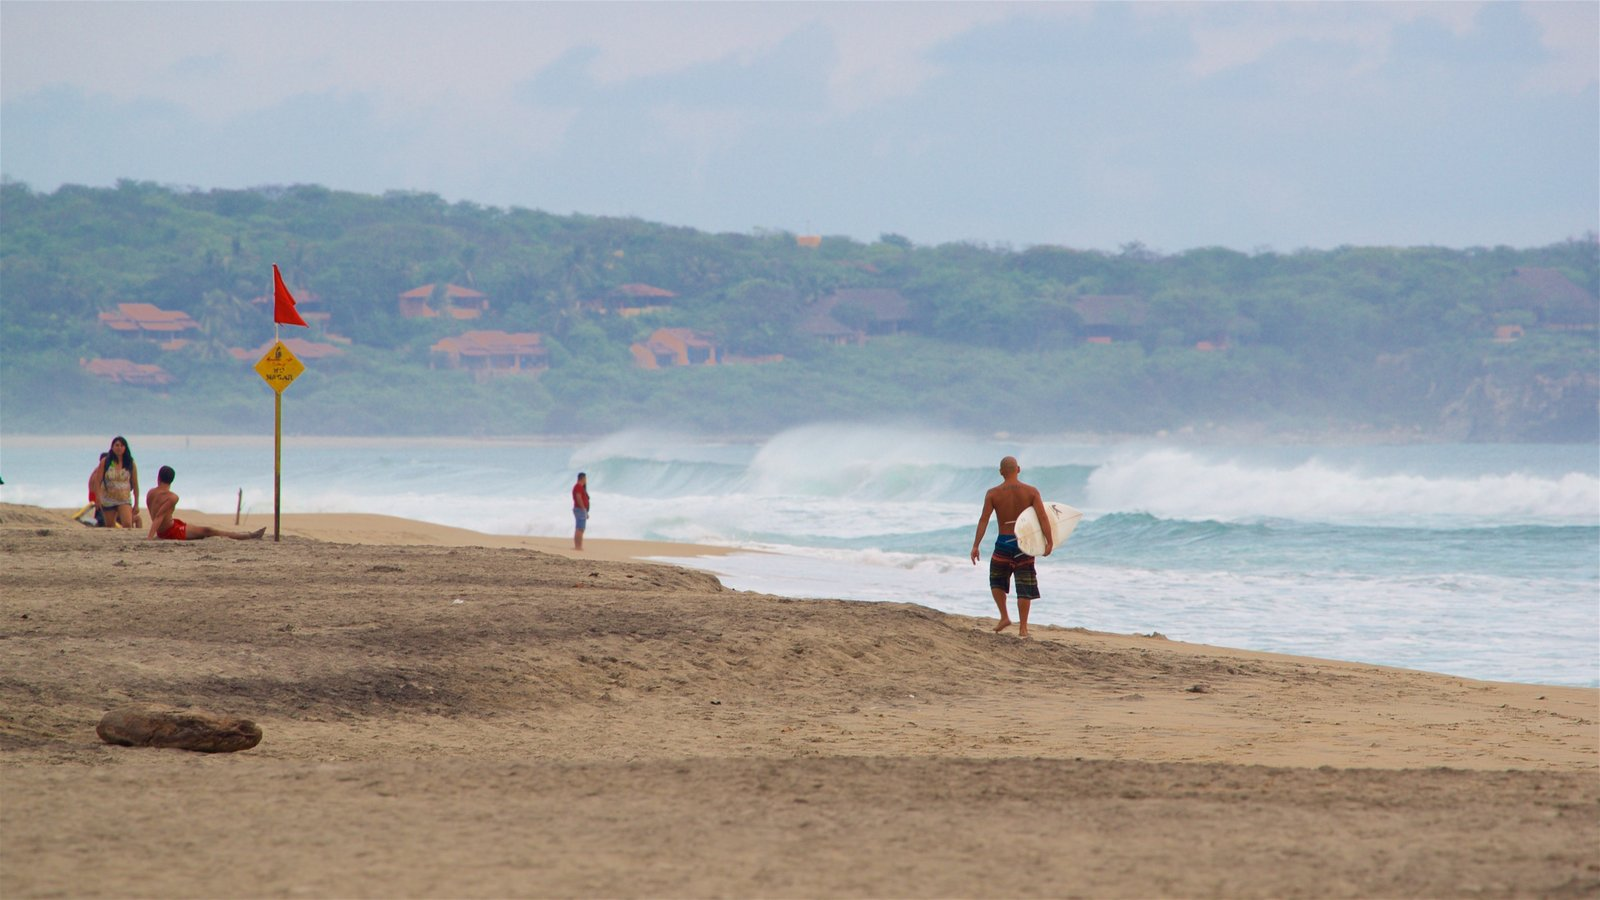 Zicatela Beach featuring a sandy beach, surf and general coastal views